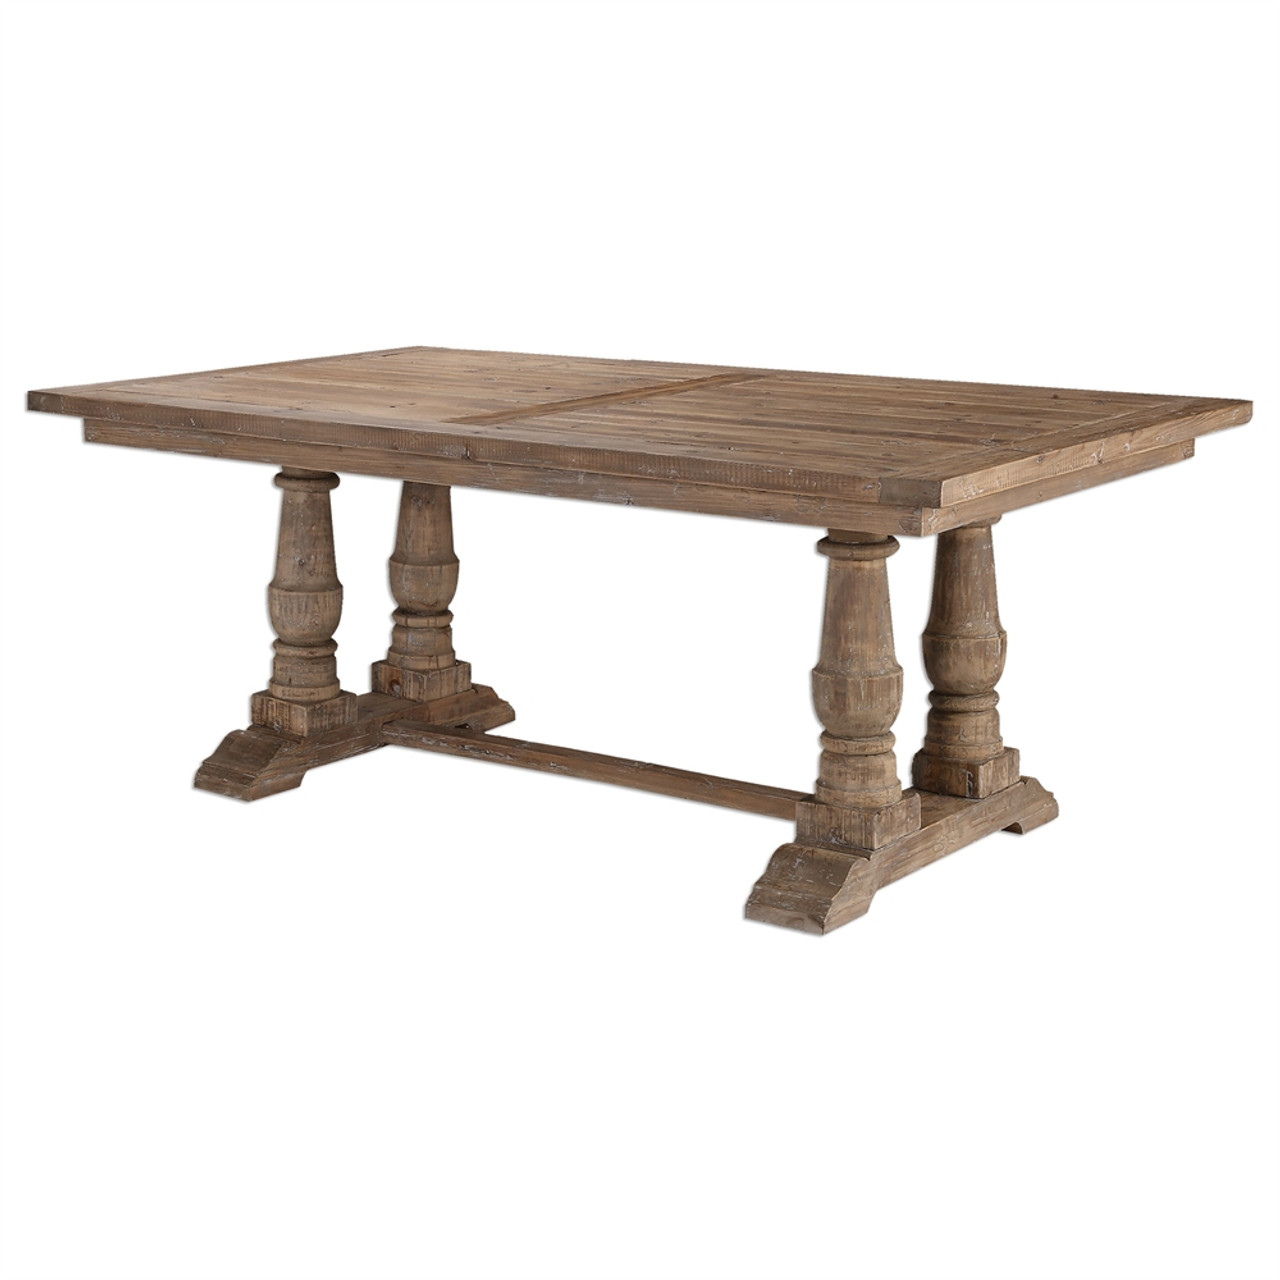 Salvaged Wood Double Trestle Dining Table Zin Home - Double pedestal trestle dining table